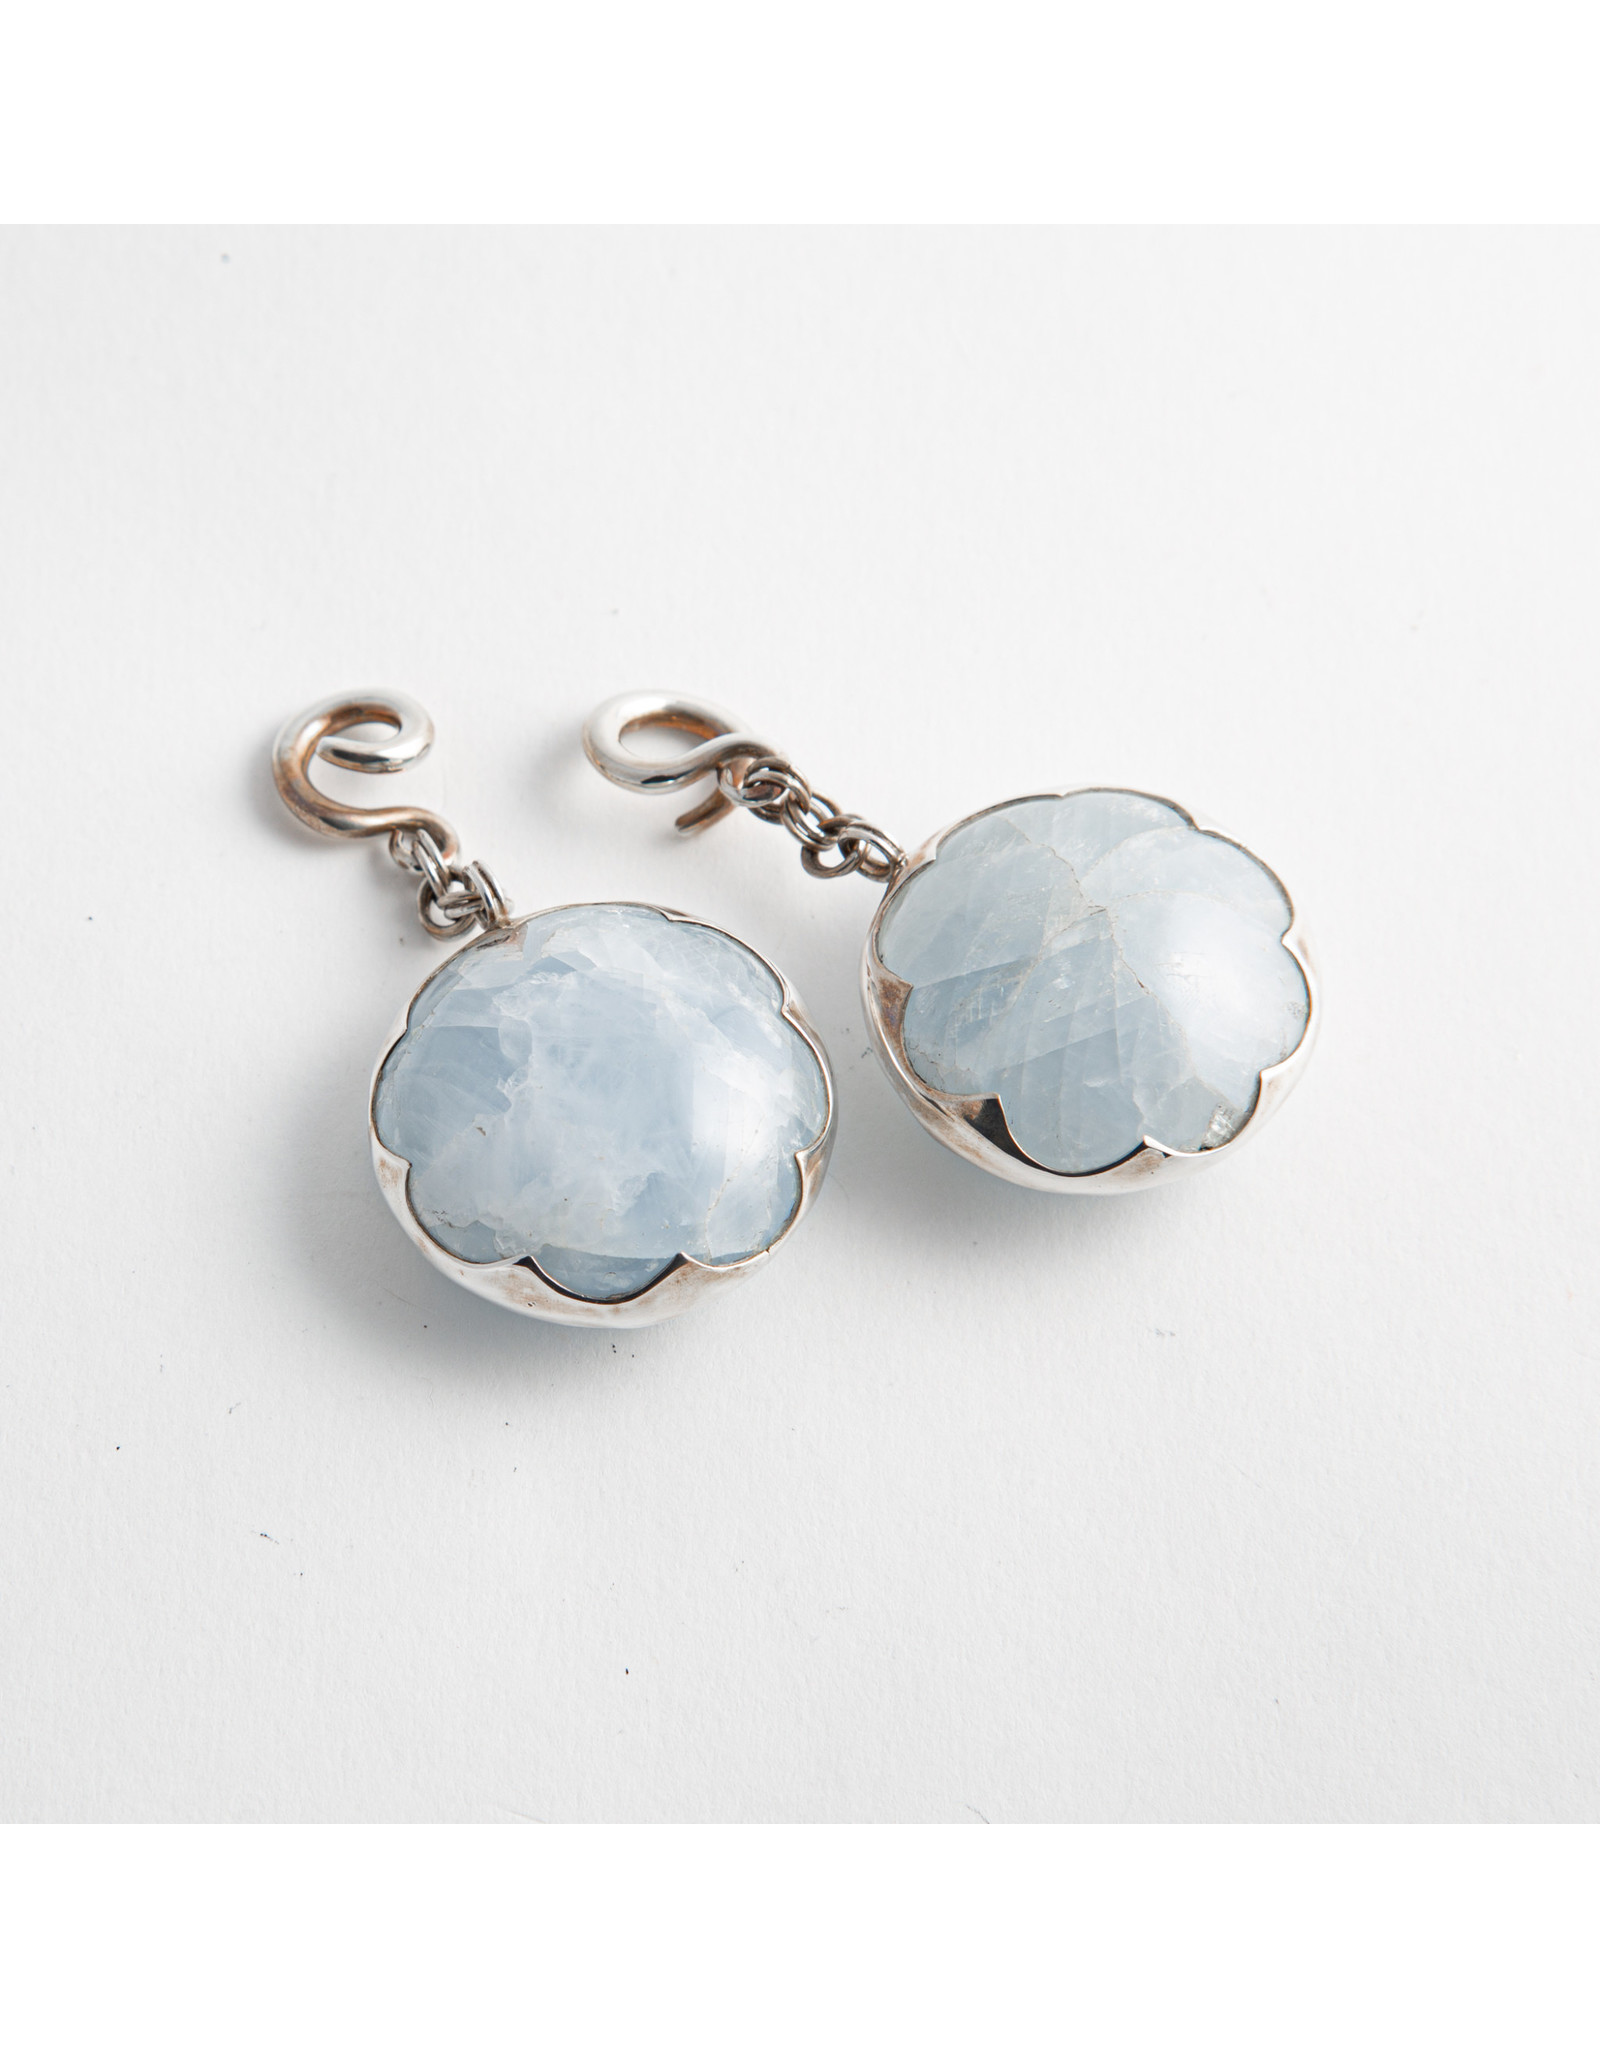 Diablo Organics Diablo Organics silver cushion-set blue calcite on small classic coil